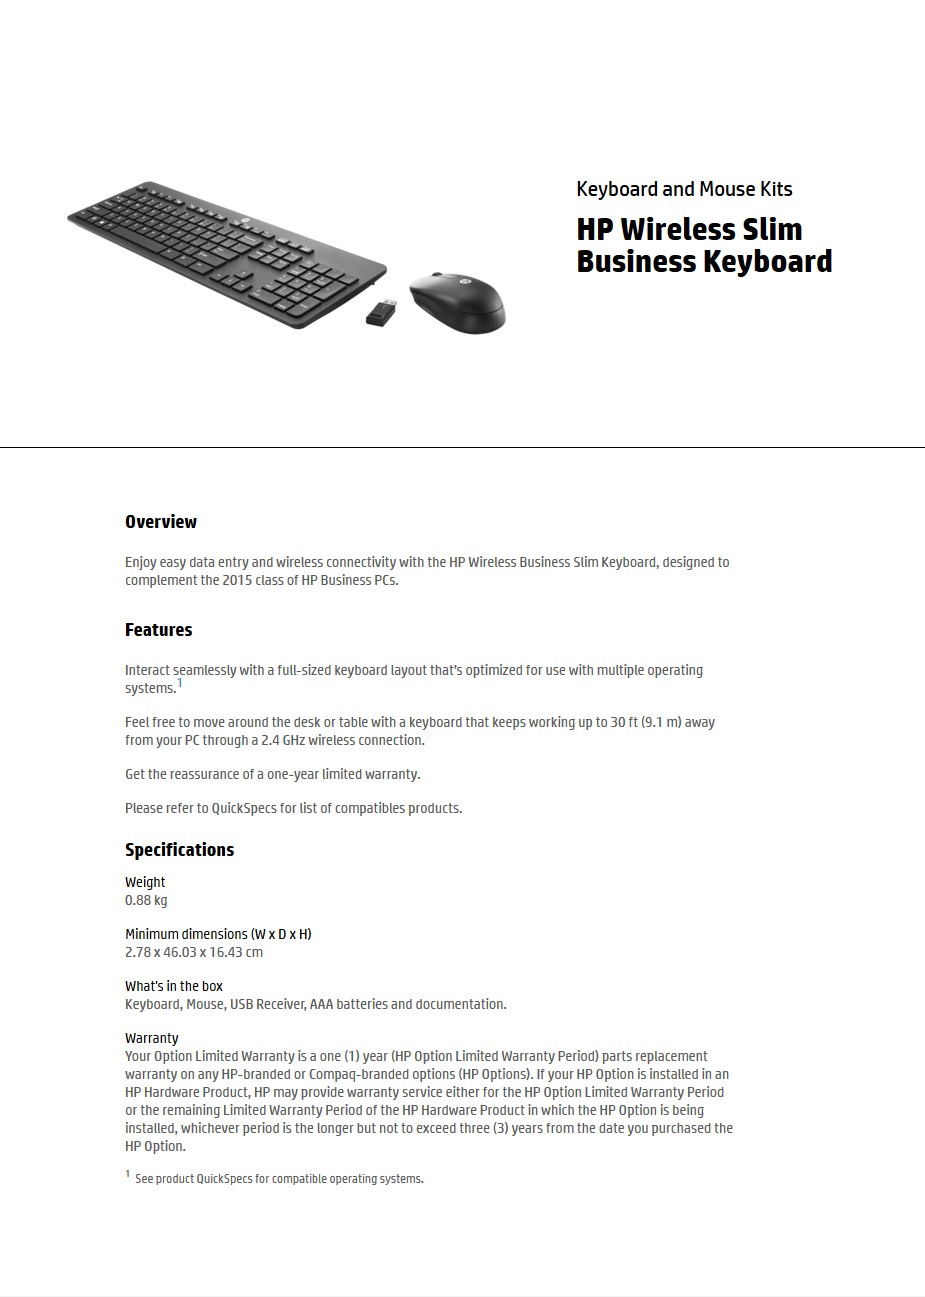 HP Wireless Slim Business Keyboard & Mouse Display Overview 1